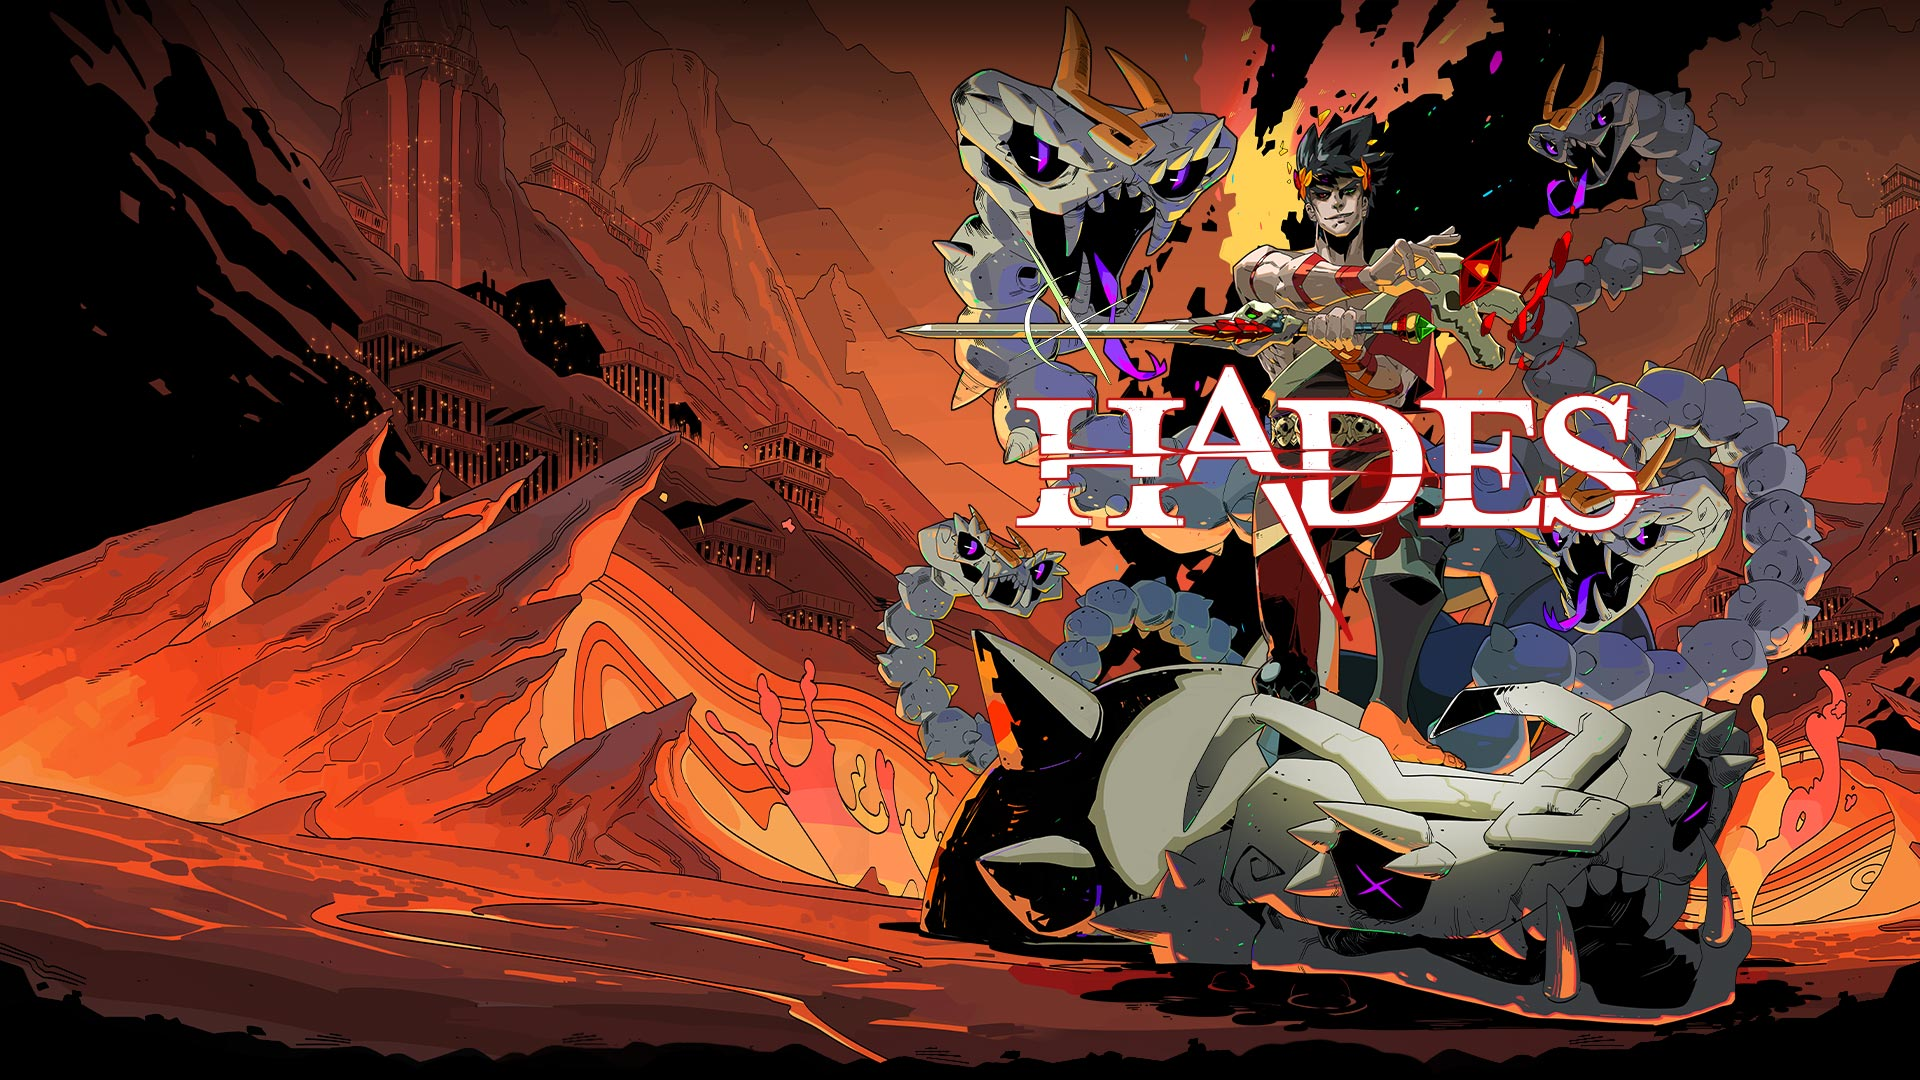 Key art from the game Hades.